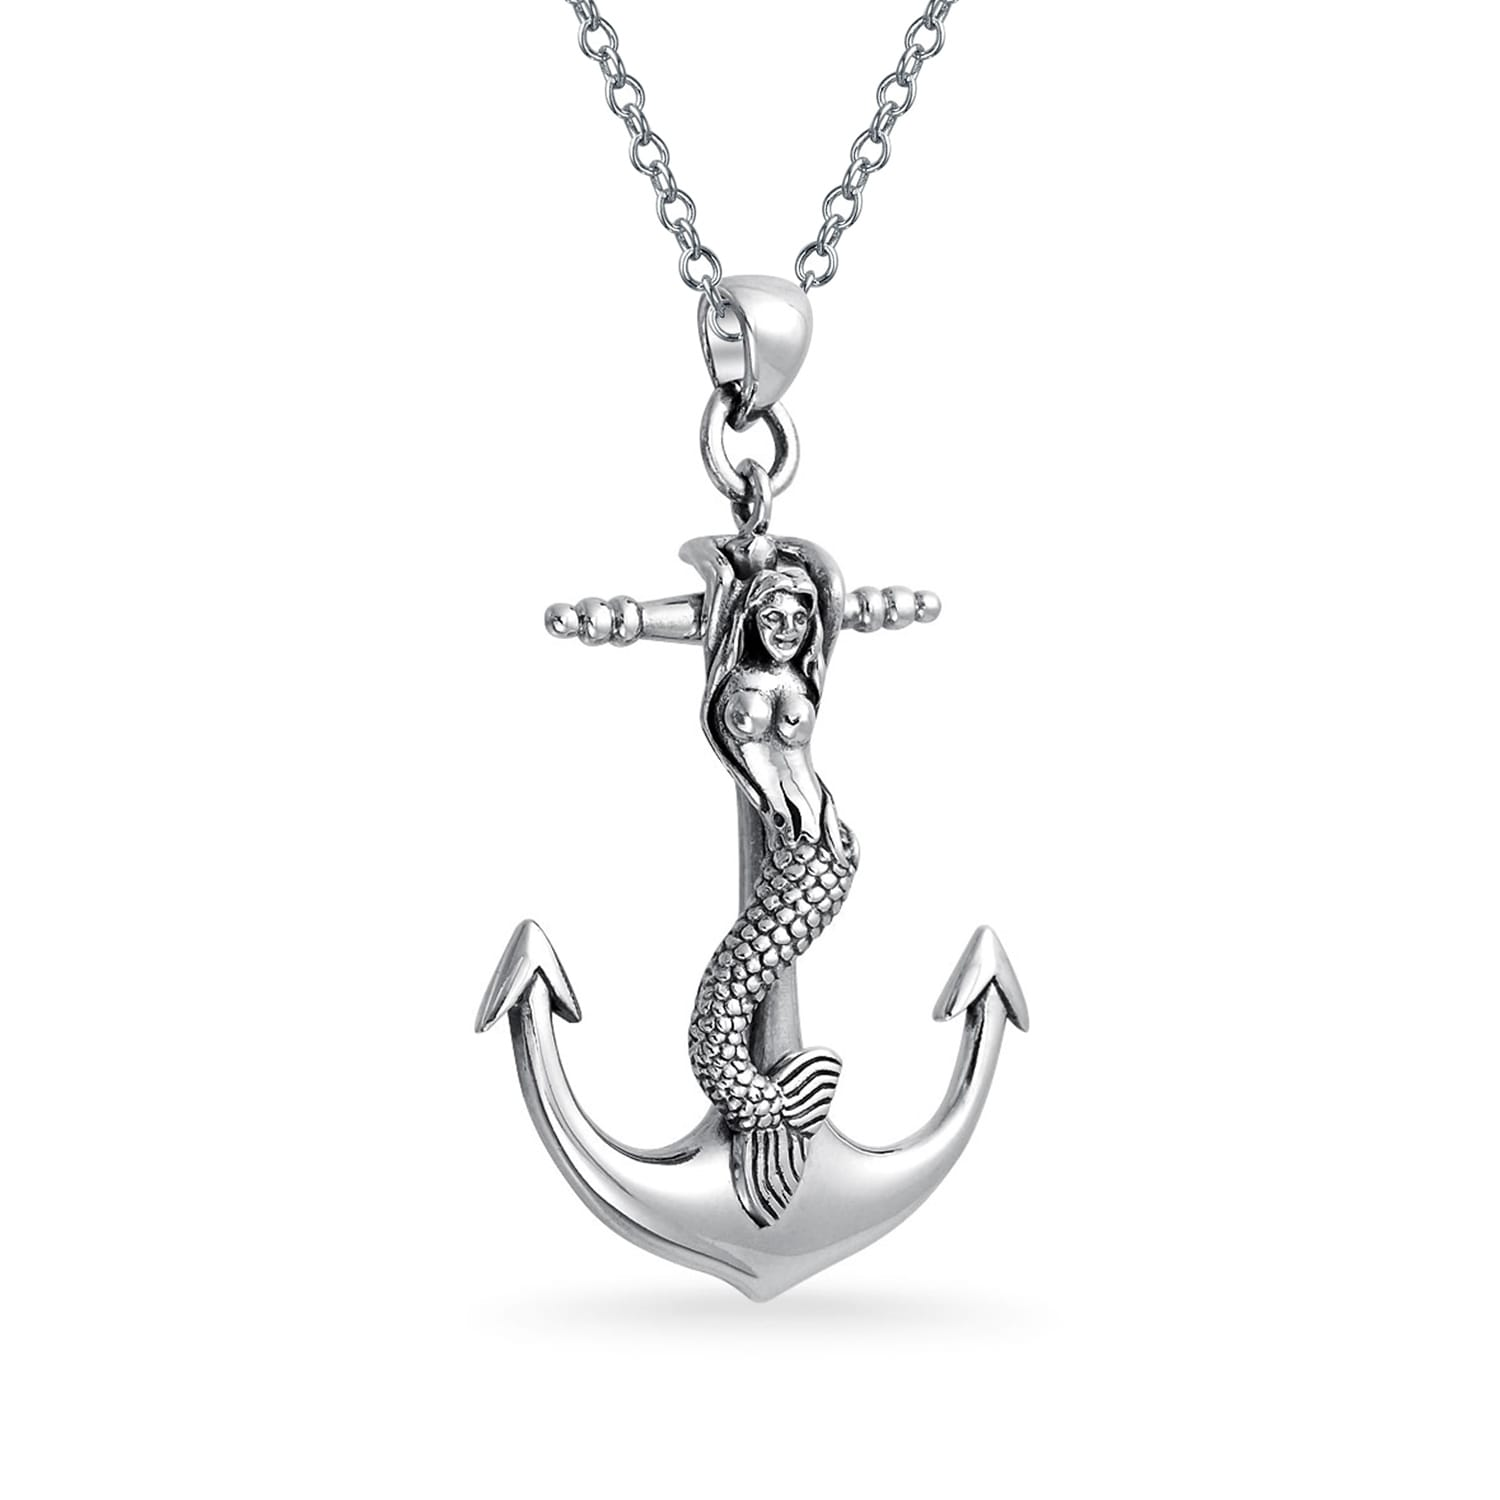 Sterling Silver Oxidized Antiqued Round Mermaids Tail Pendant